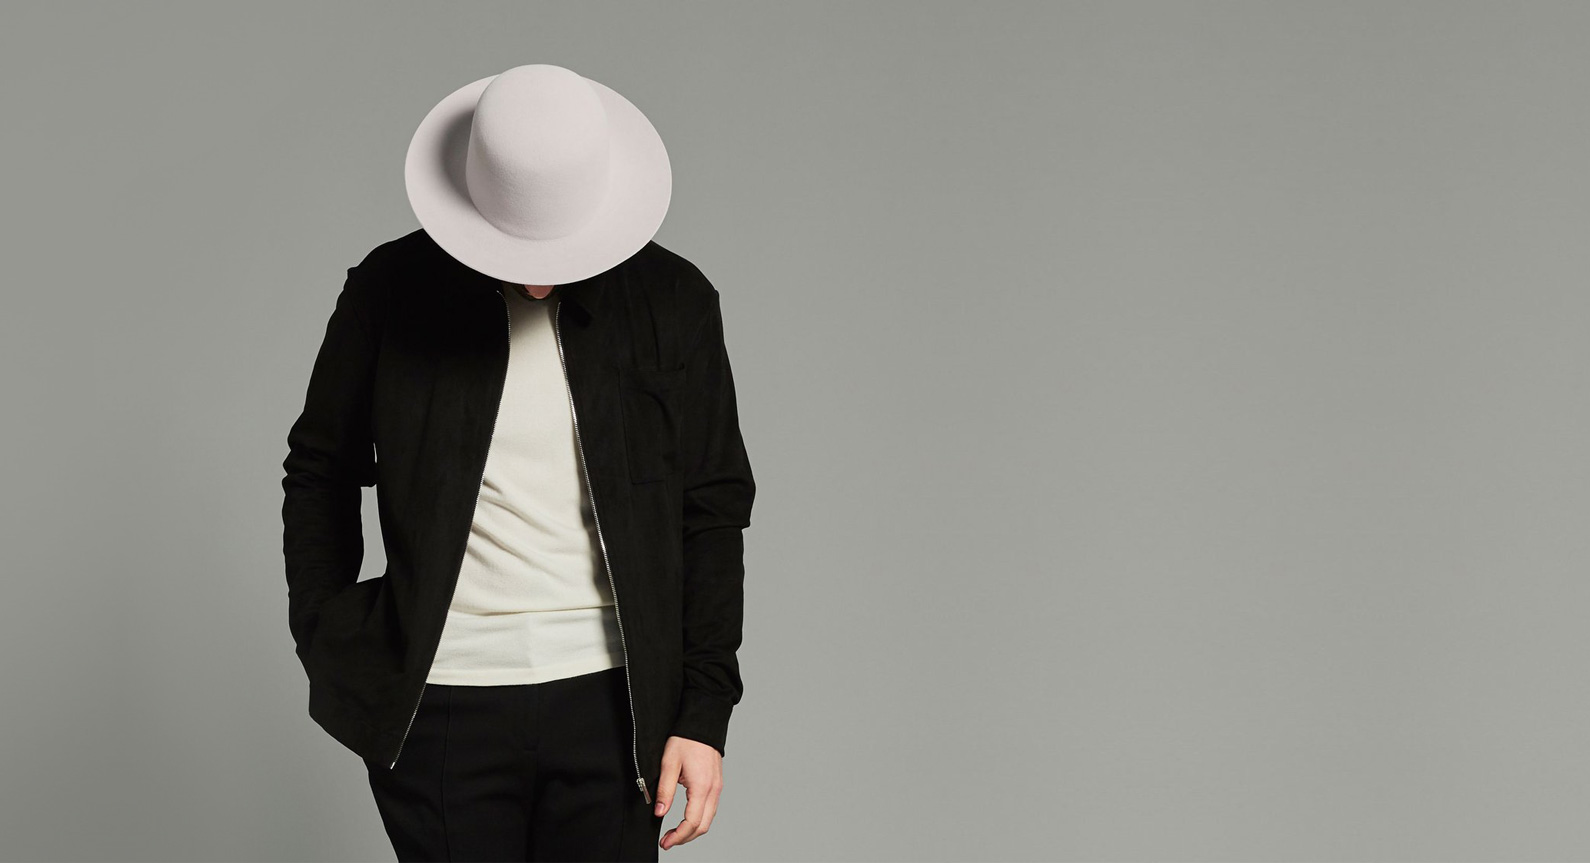 Introducing BYSJU: The British Brand Re-Shaping The Future Of Headwear